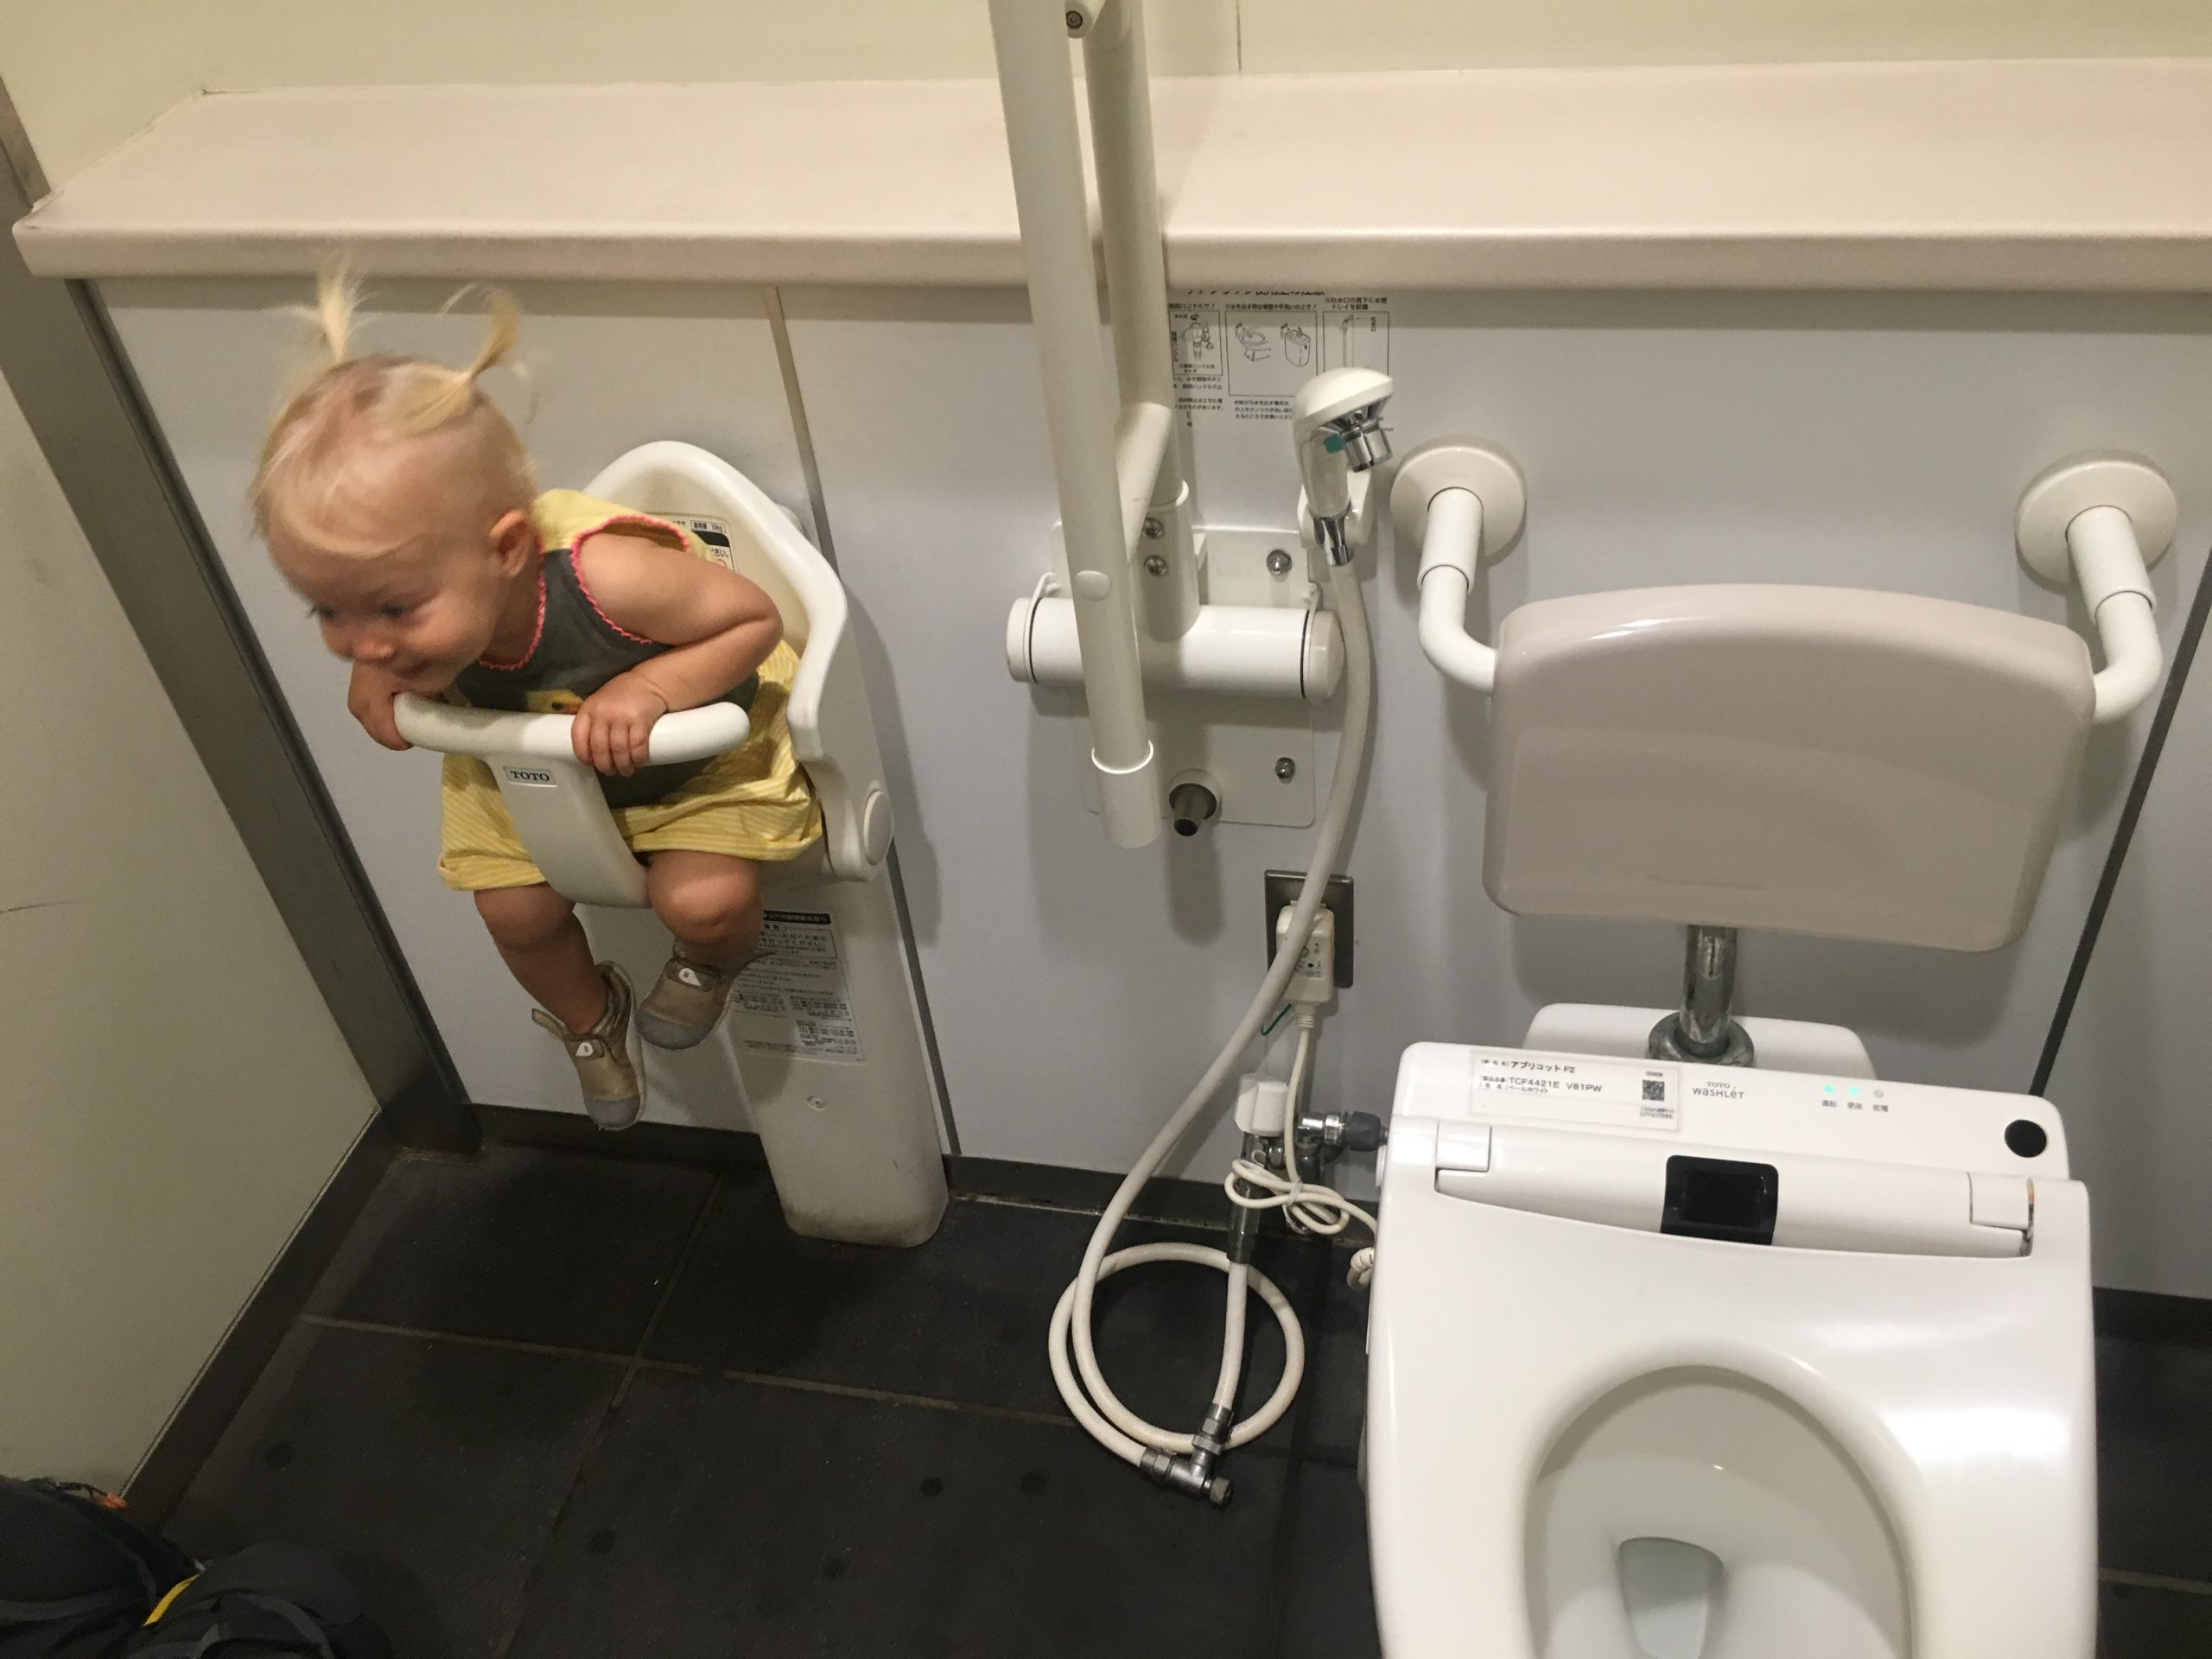 Toddler girl sitting in a child seat in a public bathroom in Japan